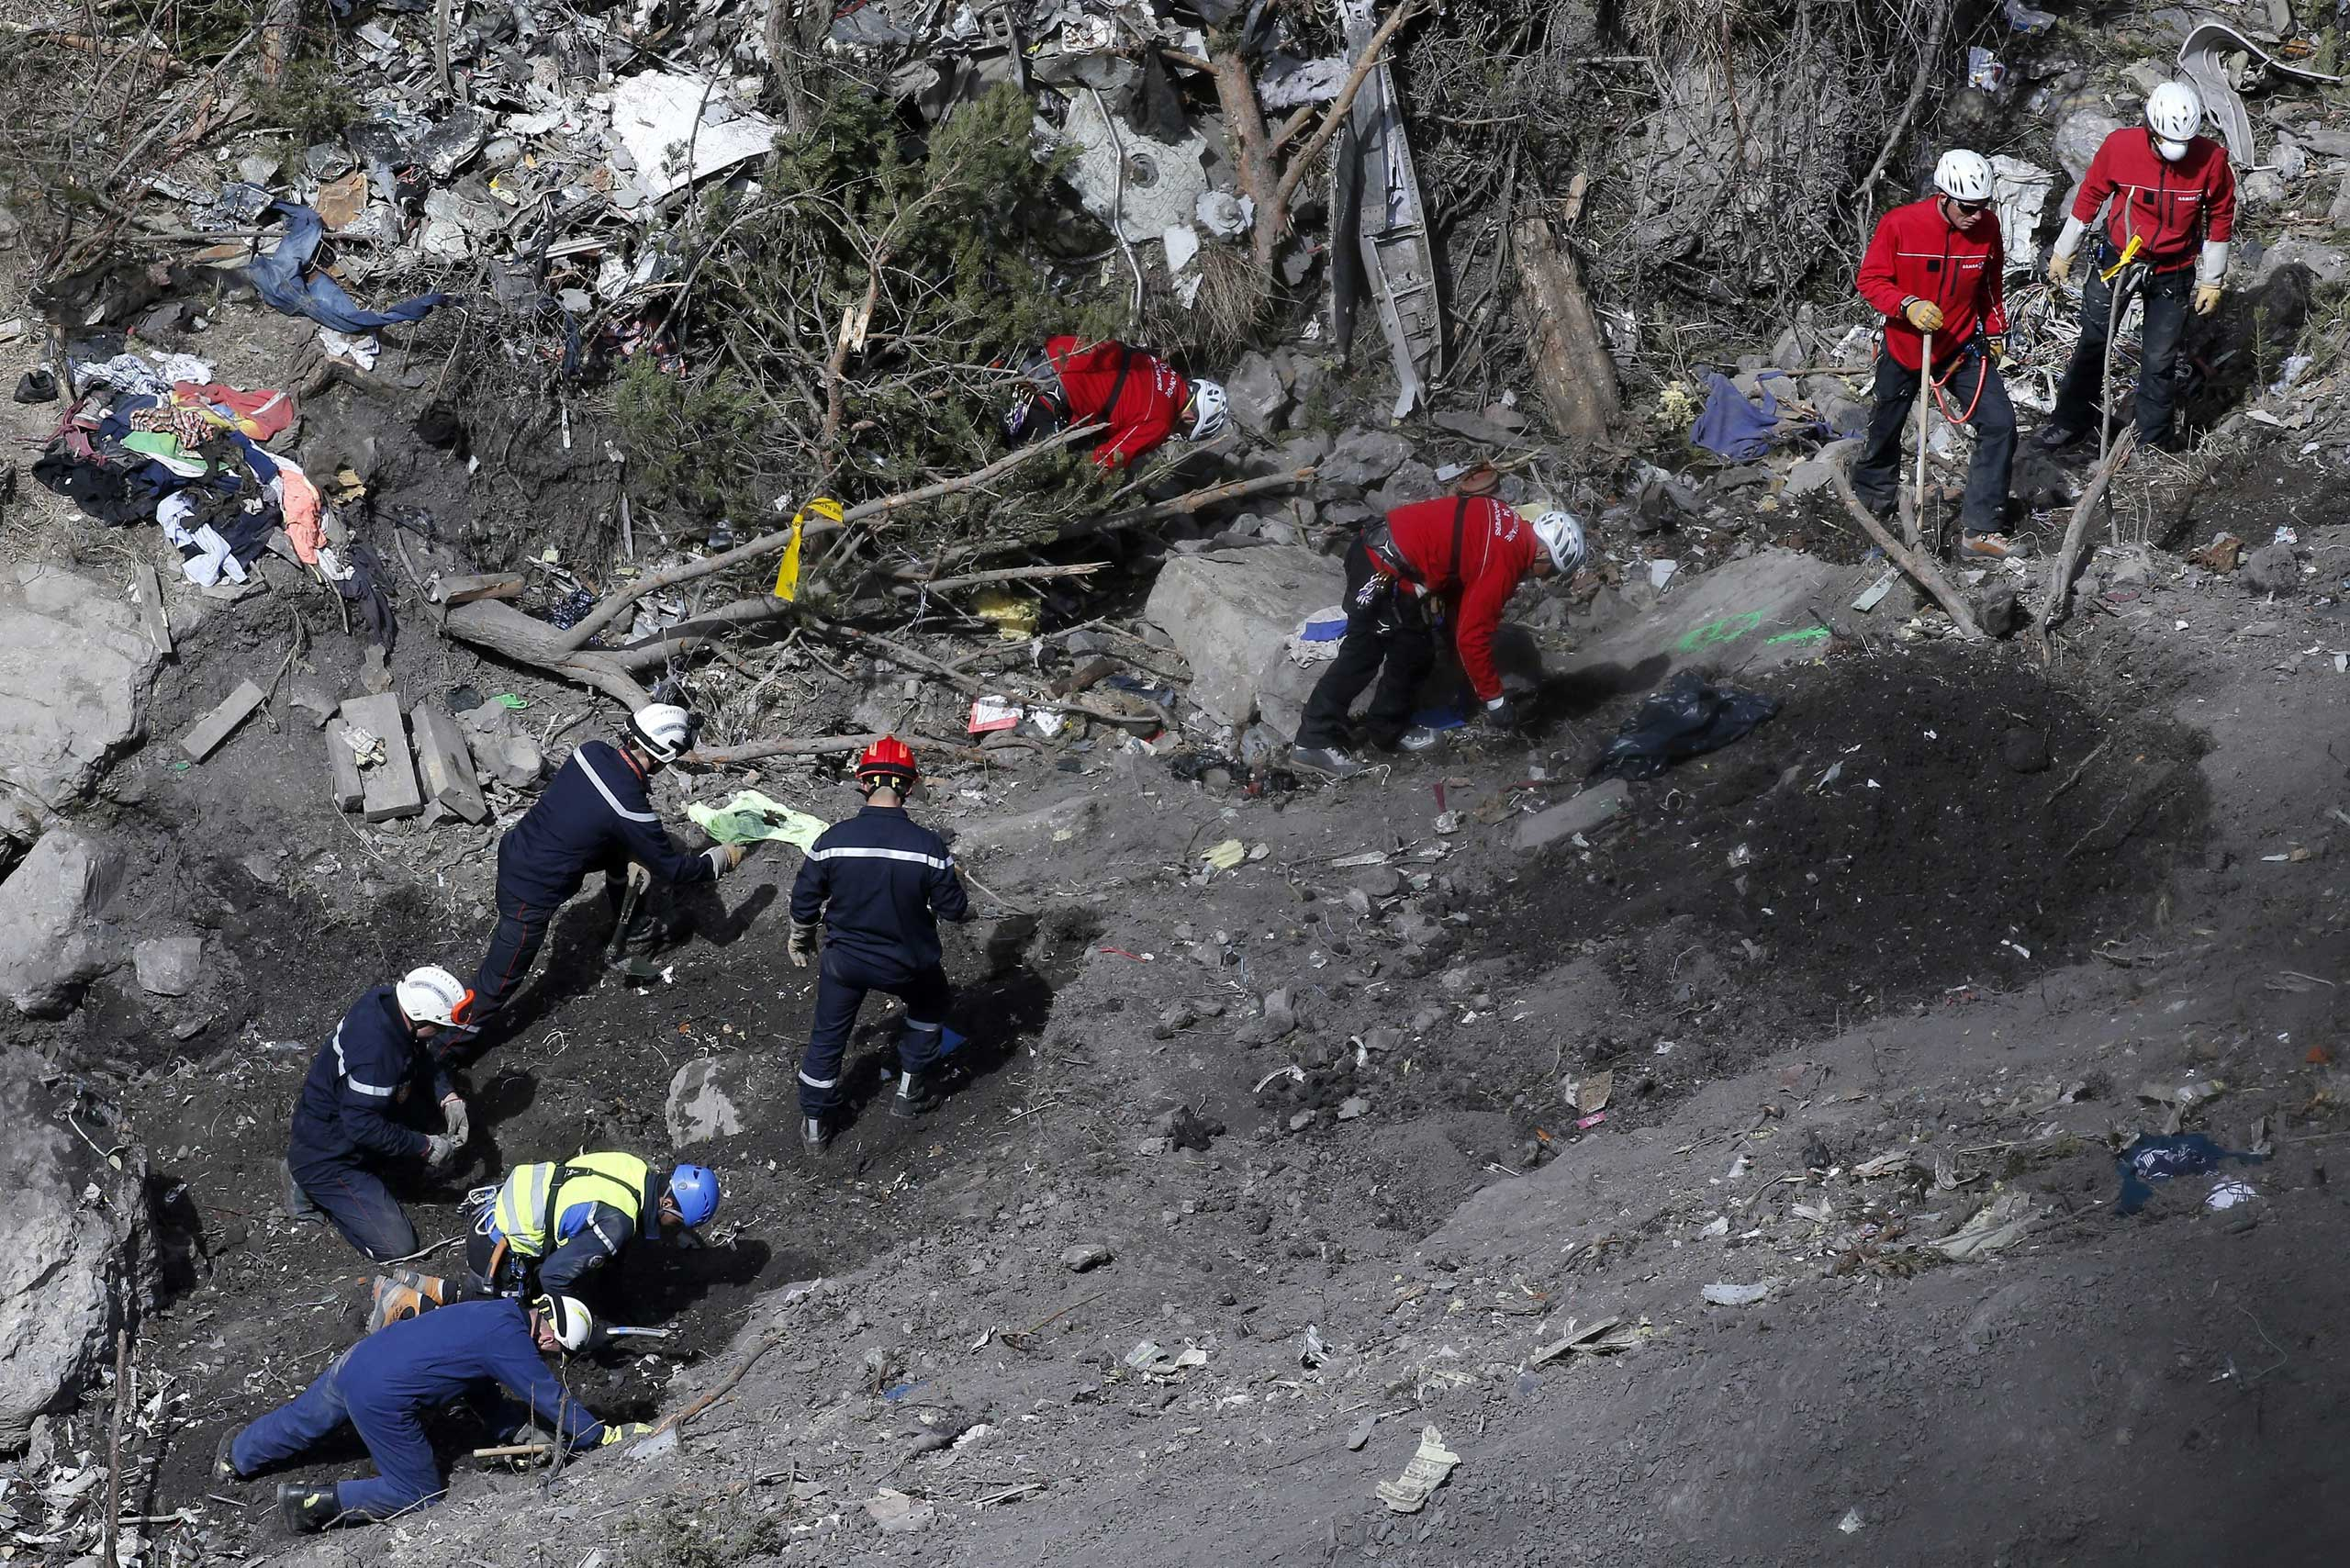 Searchers work to collect debris and find the second black box resume at the crash site of the Germanwings Airbus A320 in the French Alps, above the town of Seyne-les-Alpes, southeastern France, March 29, 2015.